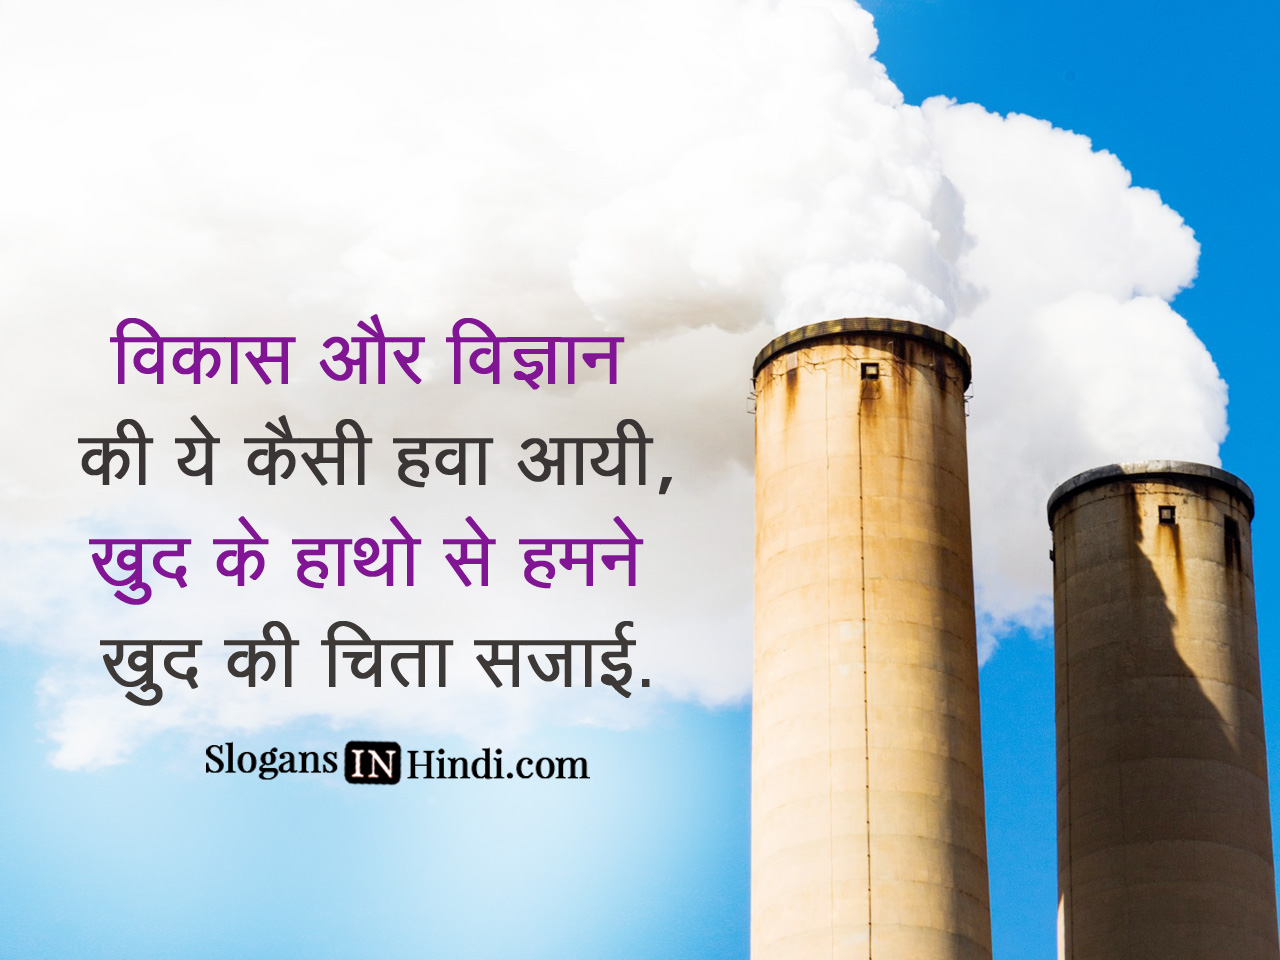 Slogans About Air Pollution In Hindi on E0 B9 81 B8 9a